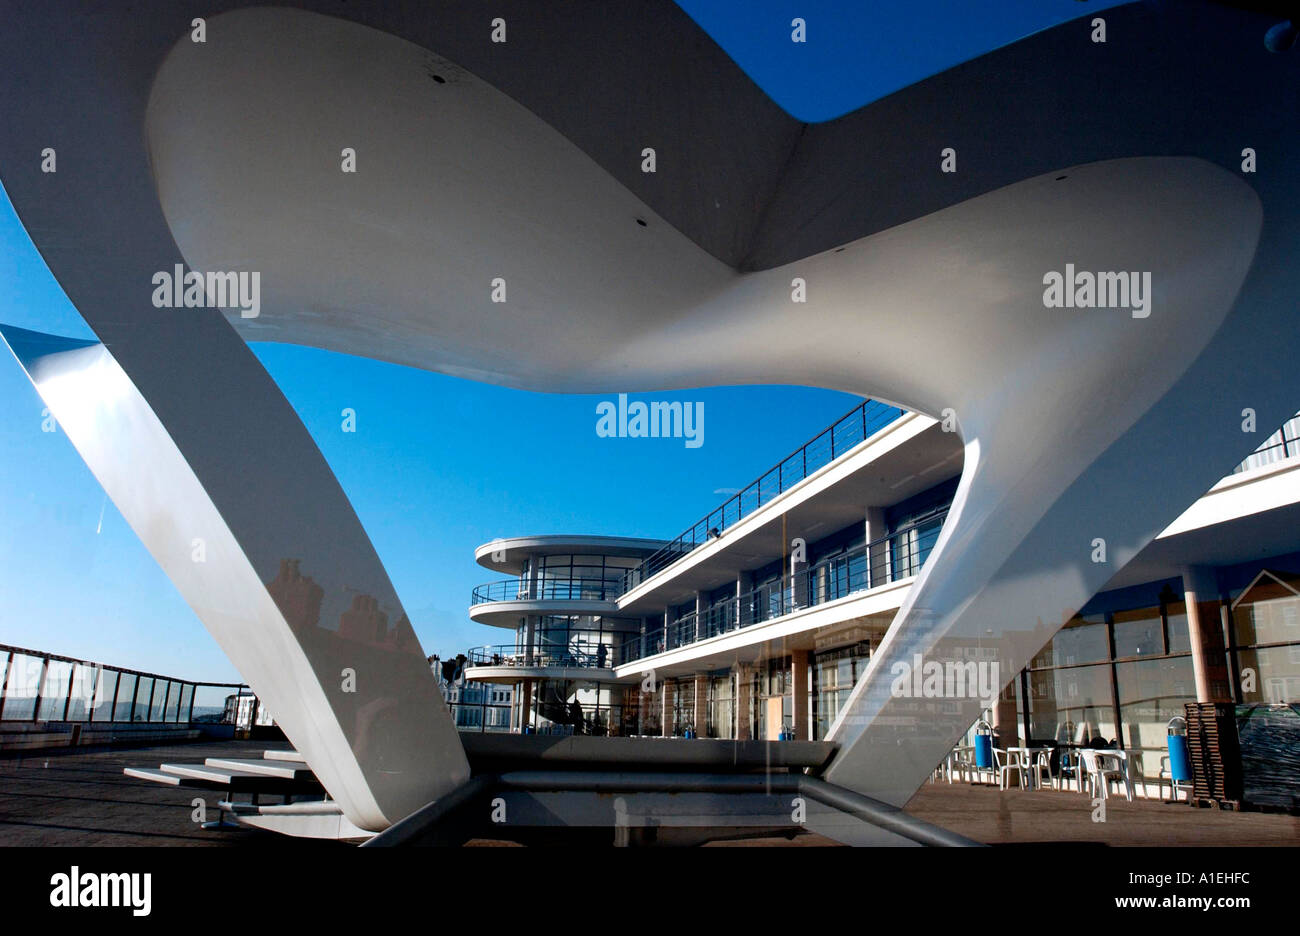 Bandstand designed by architect Niall McLaughlin for De La Warr Pavilion Bexhill on Sea East Sussex - Stock Image